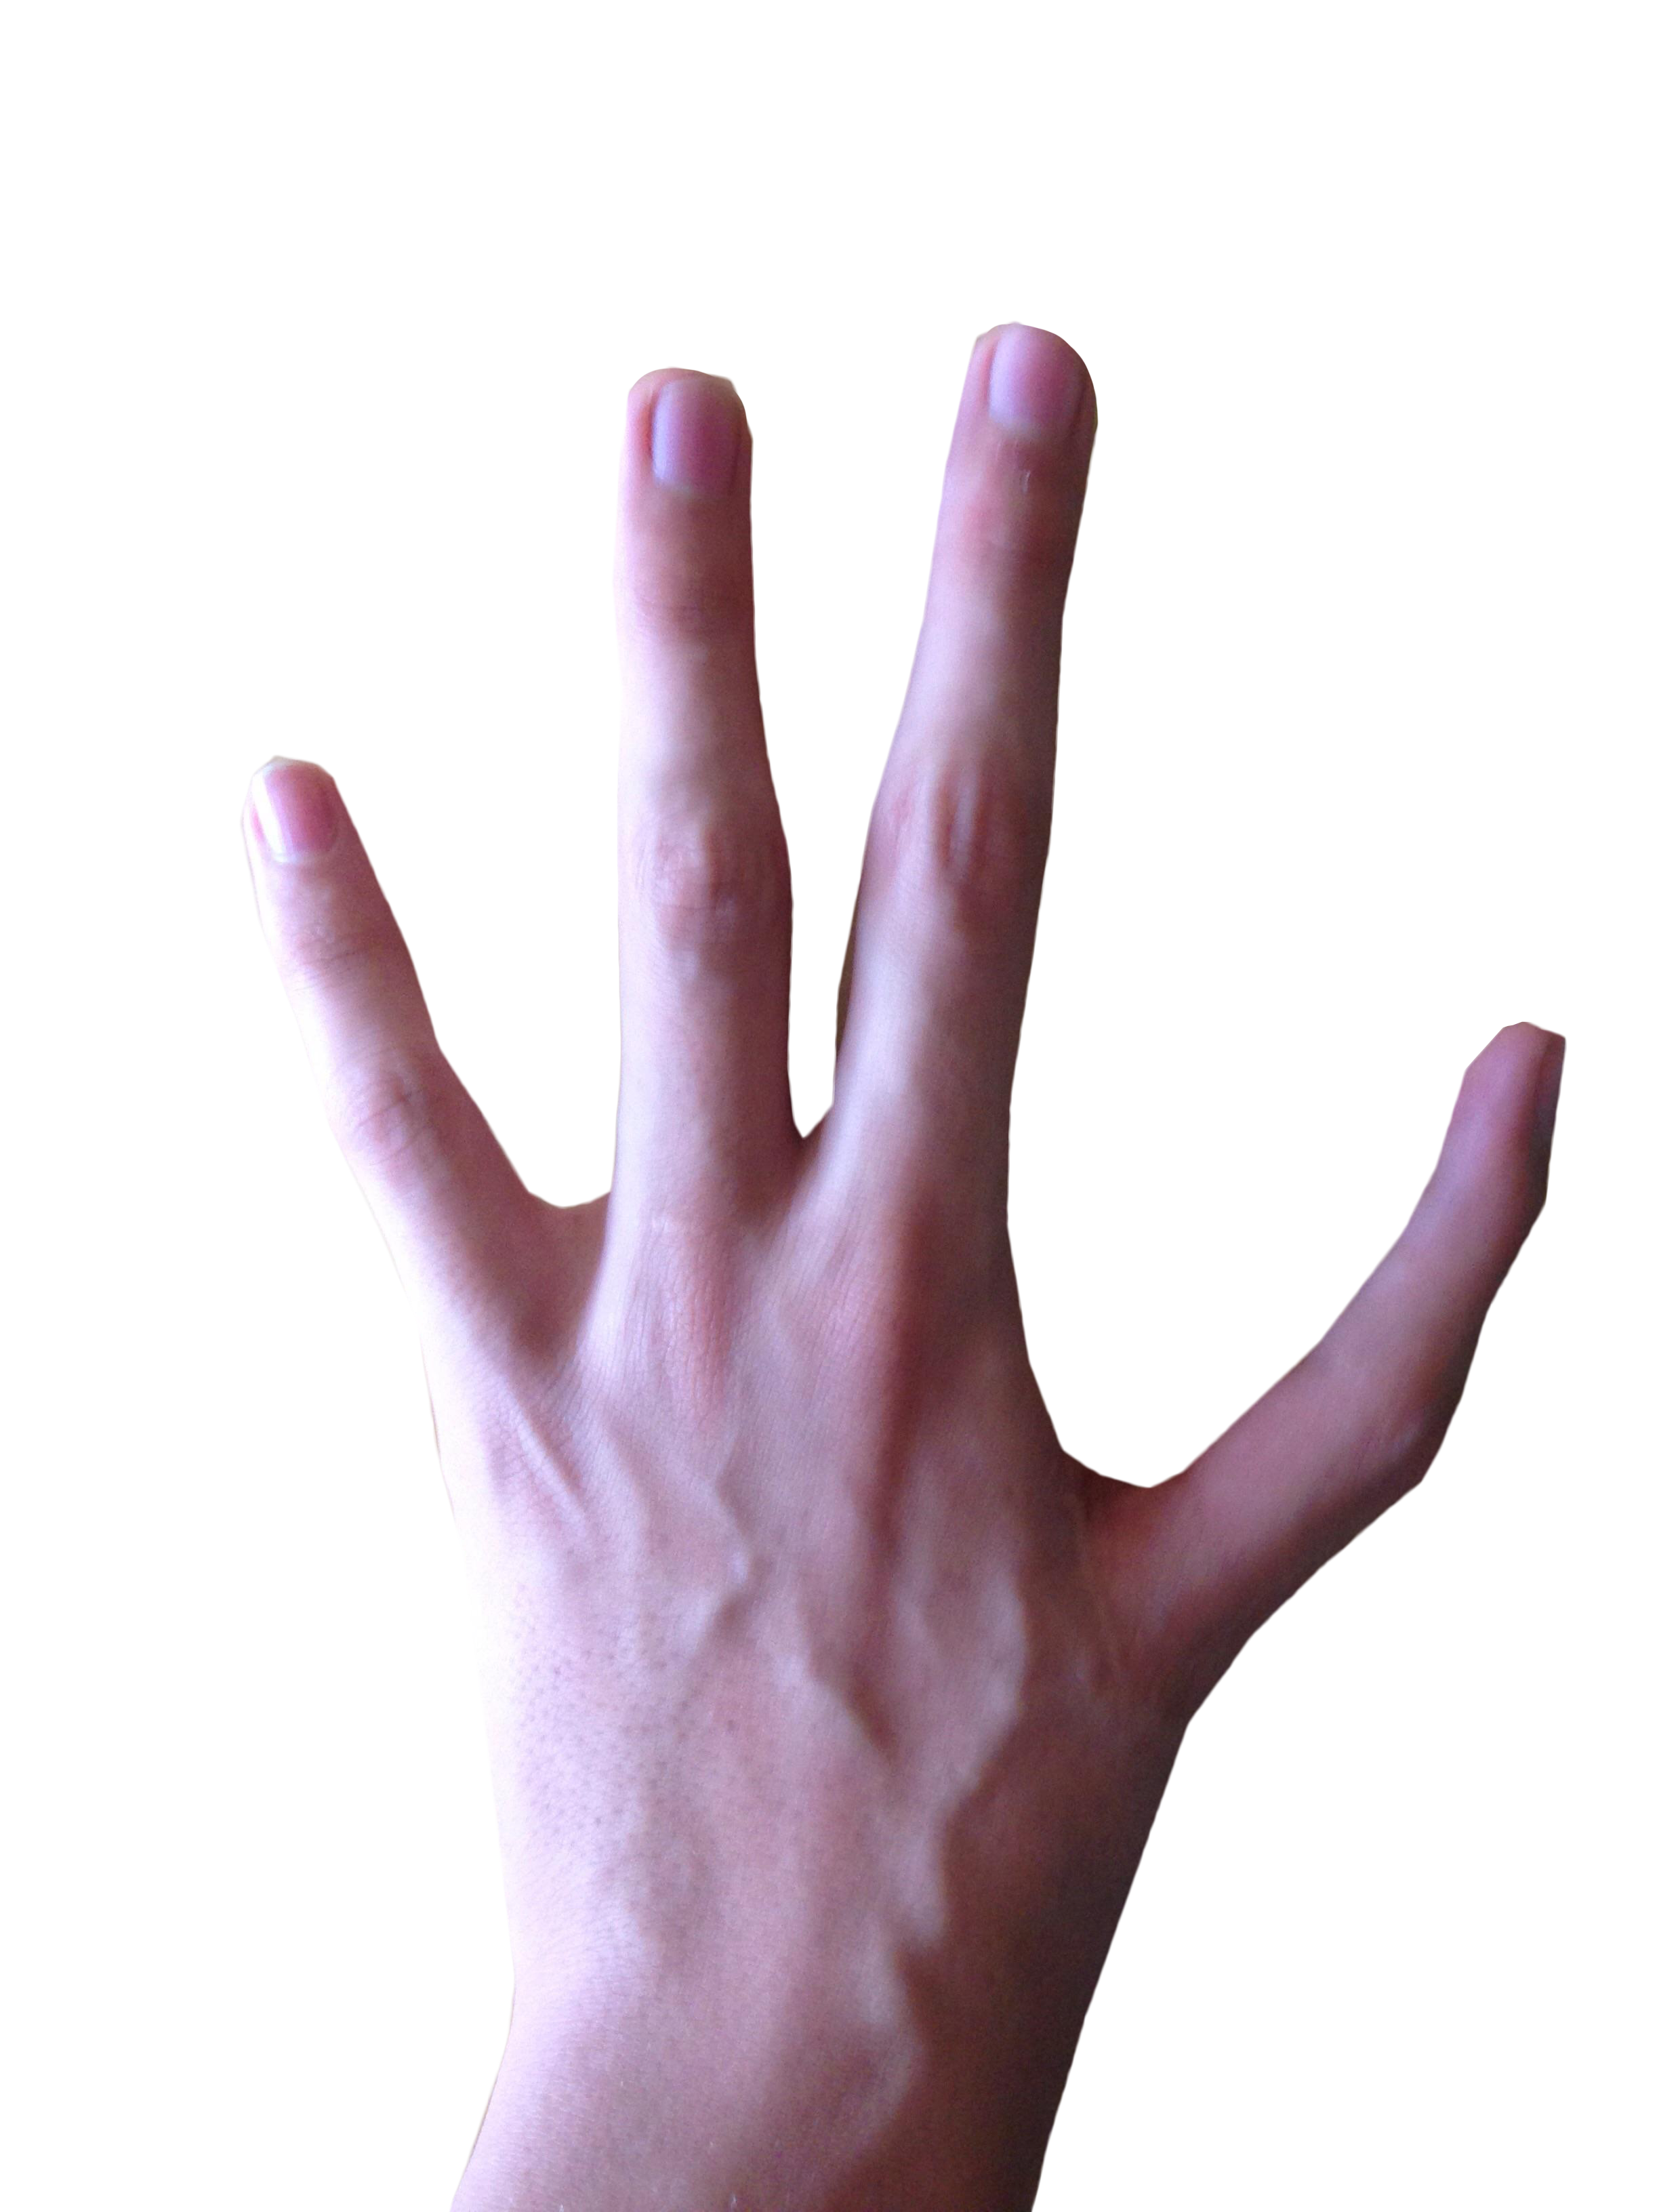 4fingers on hand clipart banner free library 4 Fingered Hand PNG Image - PurePNG | Free transparent CC0 PNG Image ... banner free library